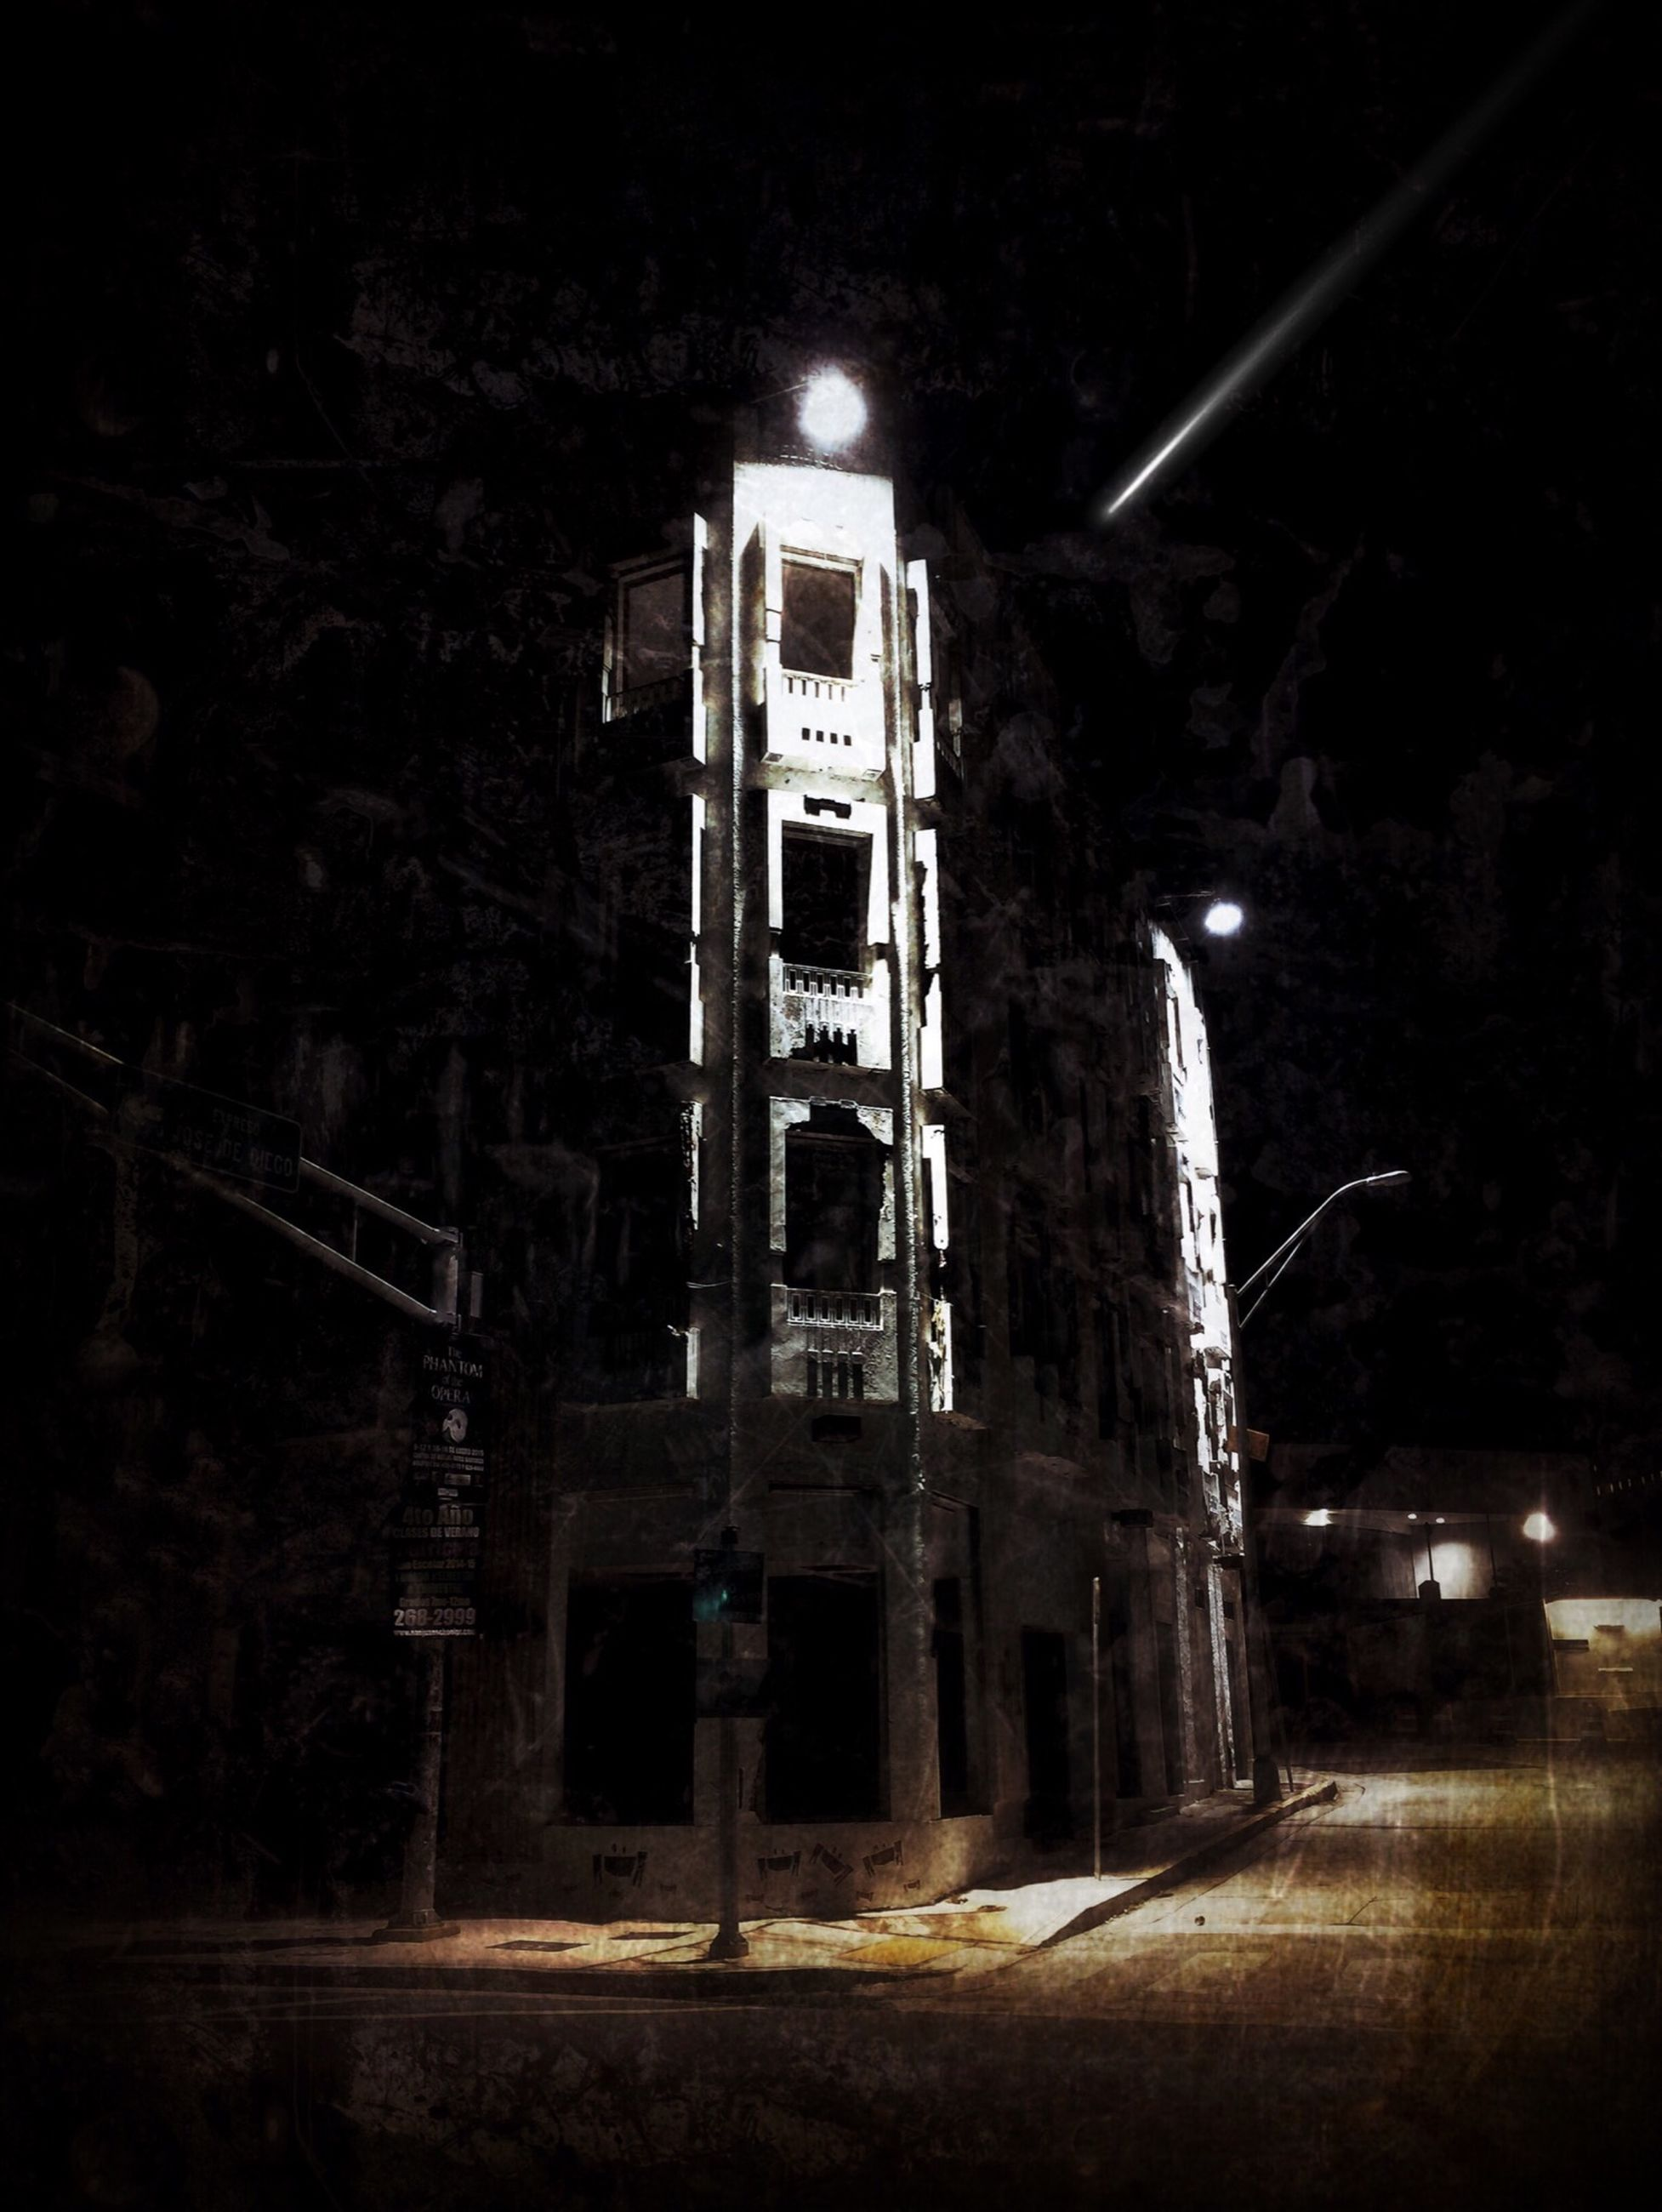 night, architecture, built structure, building exterior, illuminated, old, street light, street, outdoors, abandoned, low angle view, road, tree, transportation, lighting equipment, building, no people, dark, sky, house